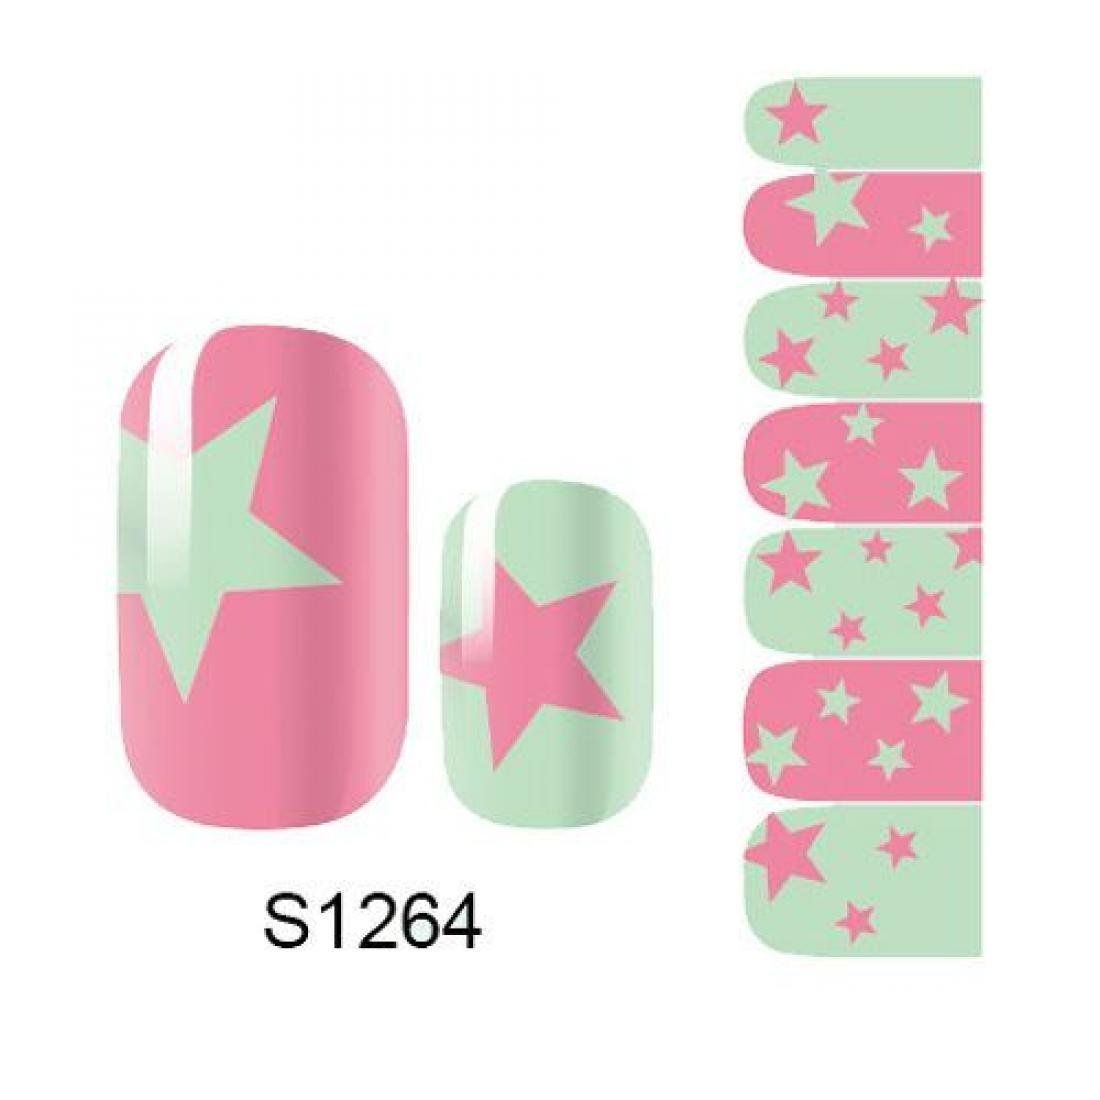 1 Pack Pride Manicure Full Fashion Self Adhesive Nail Art Stickers Style Code S1264 ** See this great product.